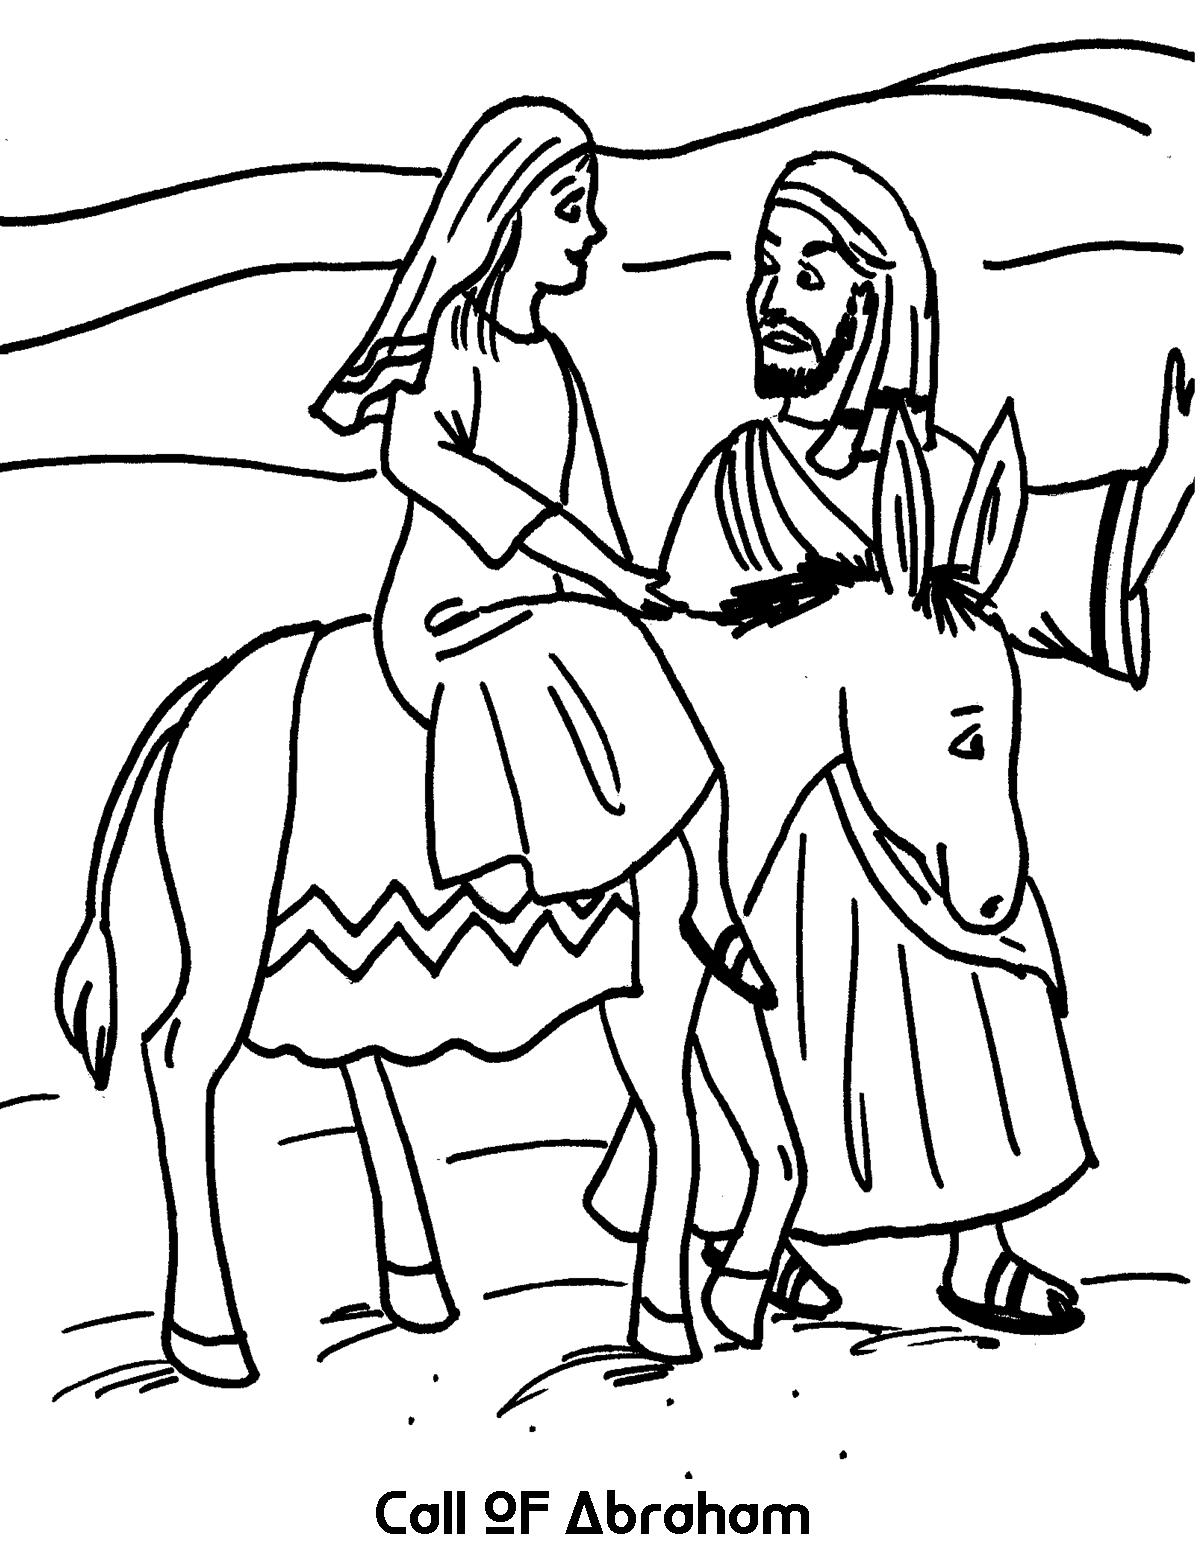 abraham coloring sheet the 25 best abraham and lot ideas on pinterest abraham coloring abraham sheet